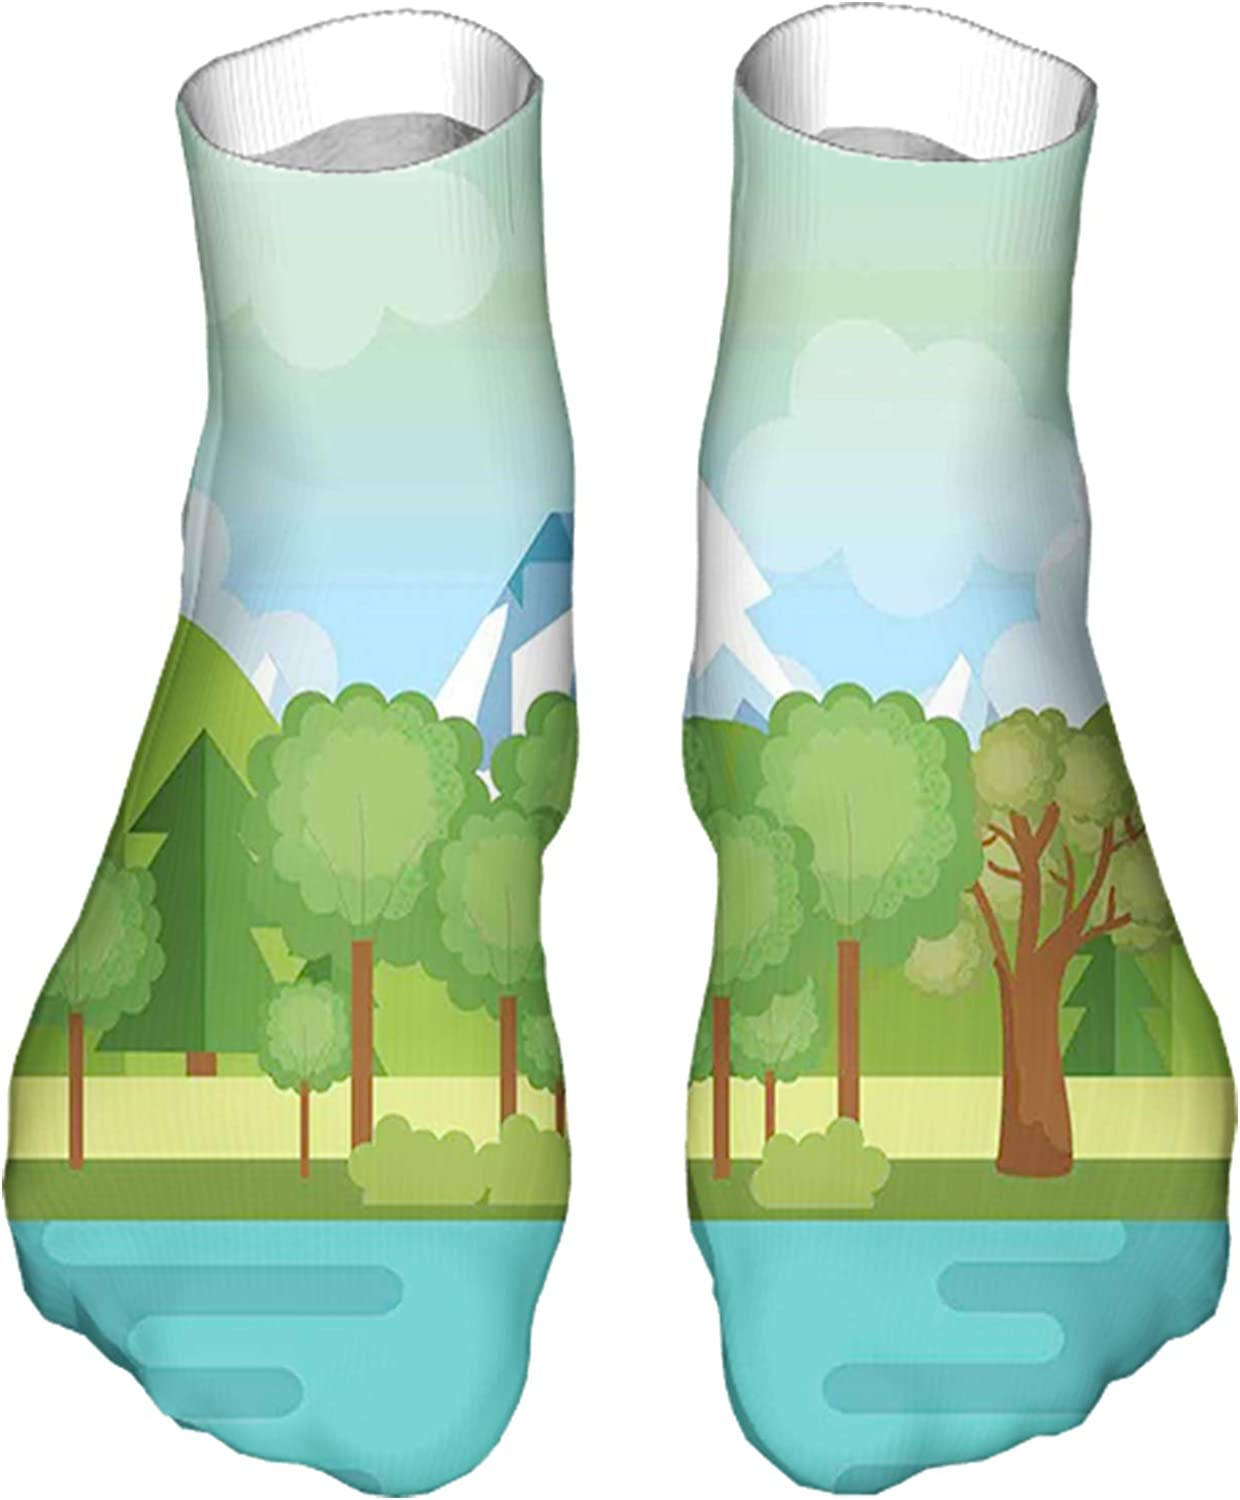 Men's and Women's Fun Socks Printed Cool Novelty Funny Socks,Landscape with Mountains and Lake Scene Illustration Design